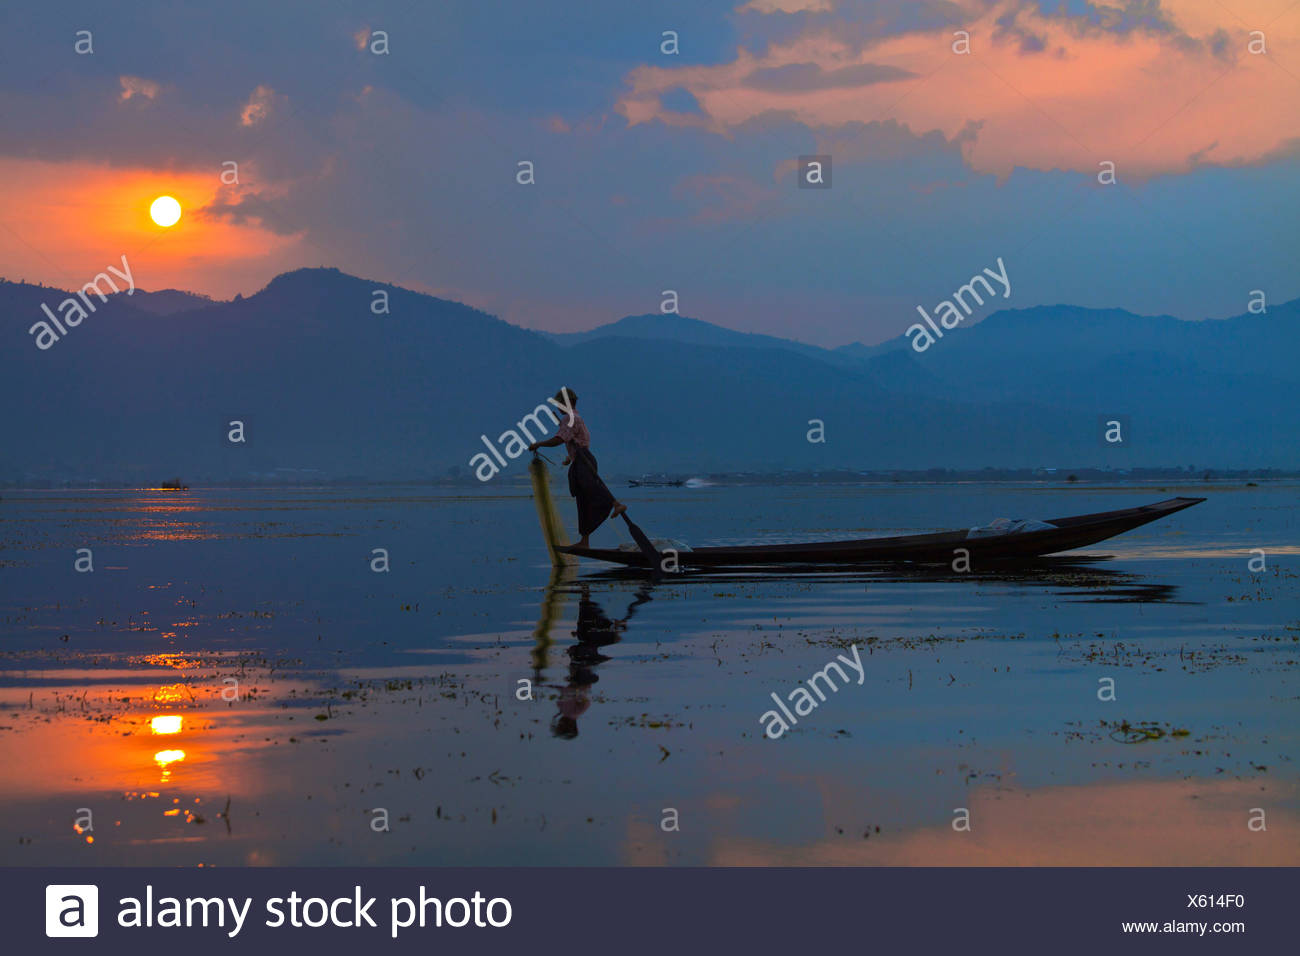 FISHING at dawn is still done in the traditonal way with small wooden boats, fishing nets and leg rowing - INLE LAKE, Burma - Stock Image